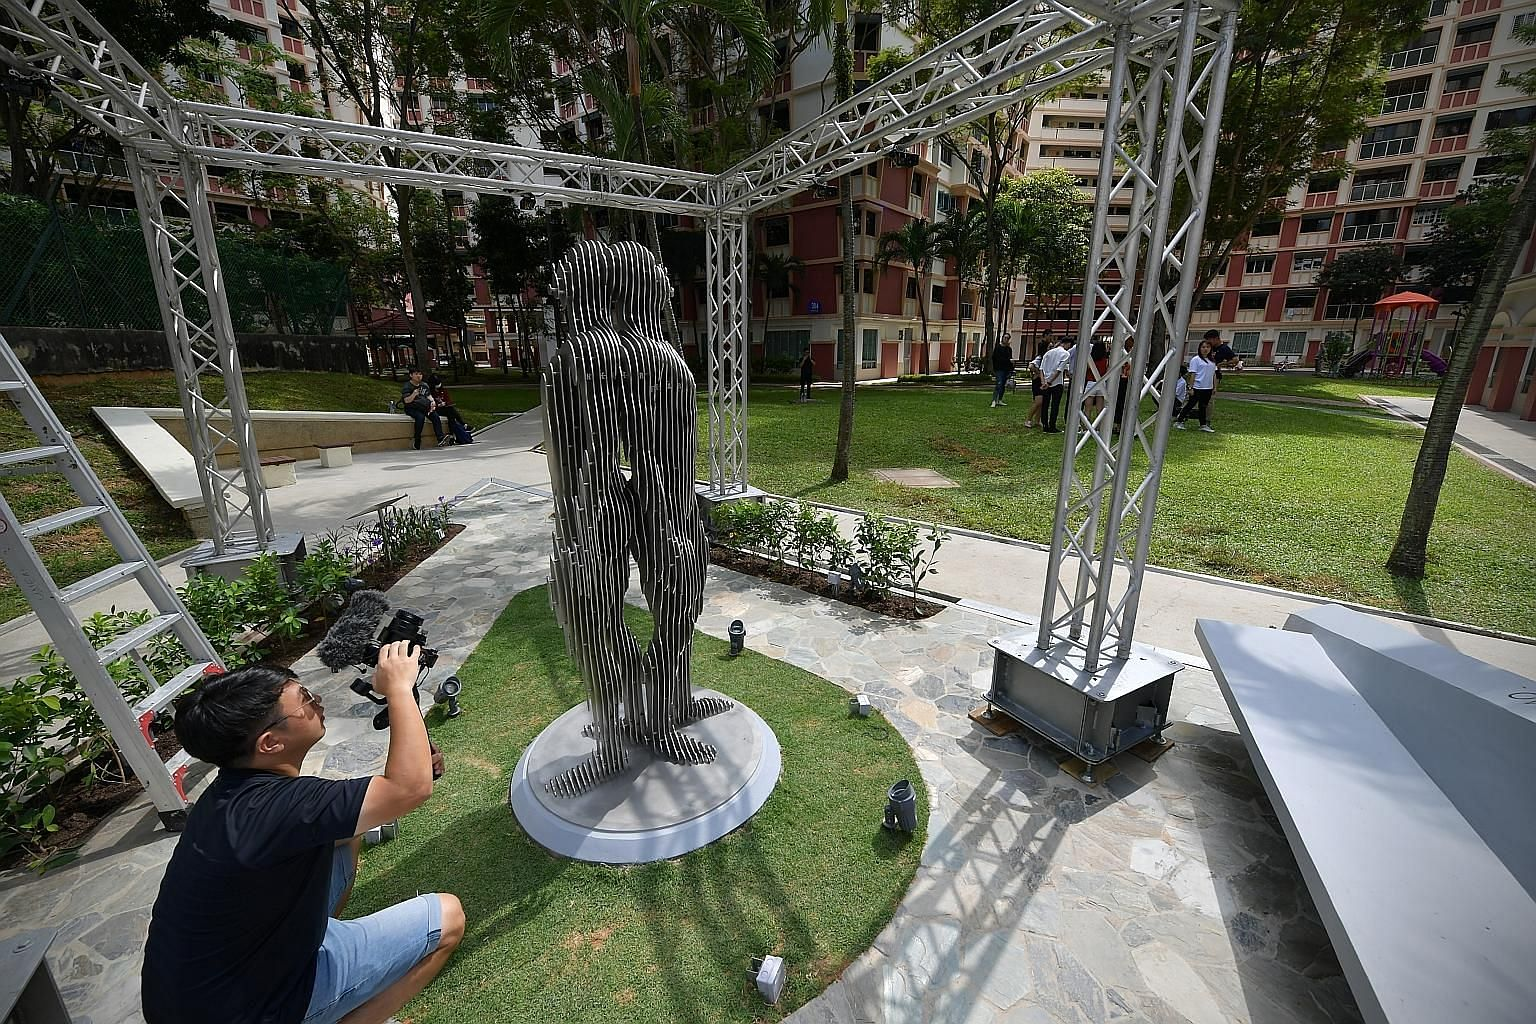 """The marker portrays two figures standing back to back, one looking back at the past, and the other forward to the future. The words """"Never fear"""", used in founding Prime Minister Lee Kuan Yew's 1965 speech """"From Mudflats To Metropolis"""", are embedded i"""